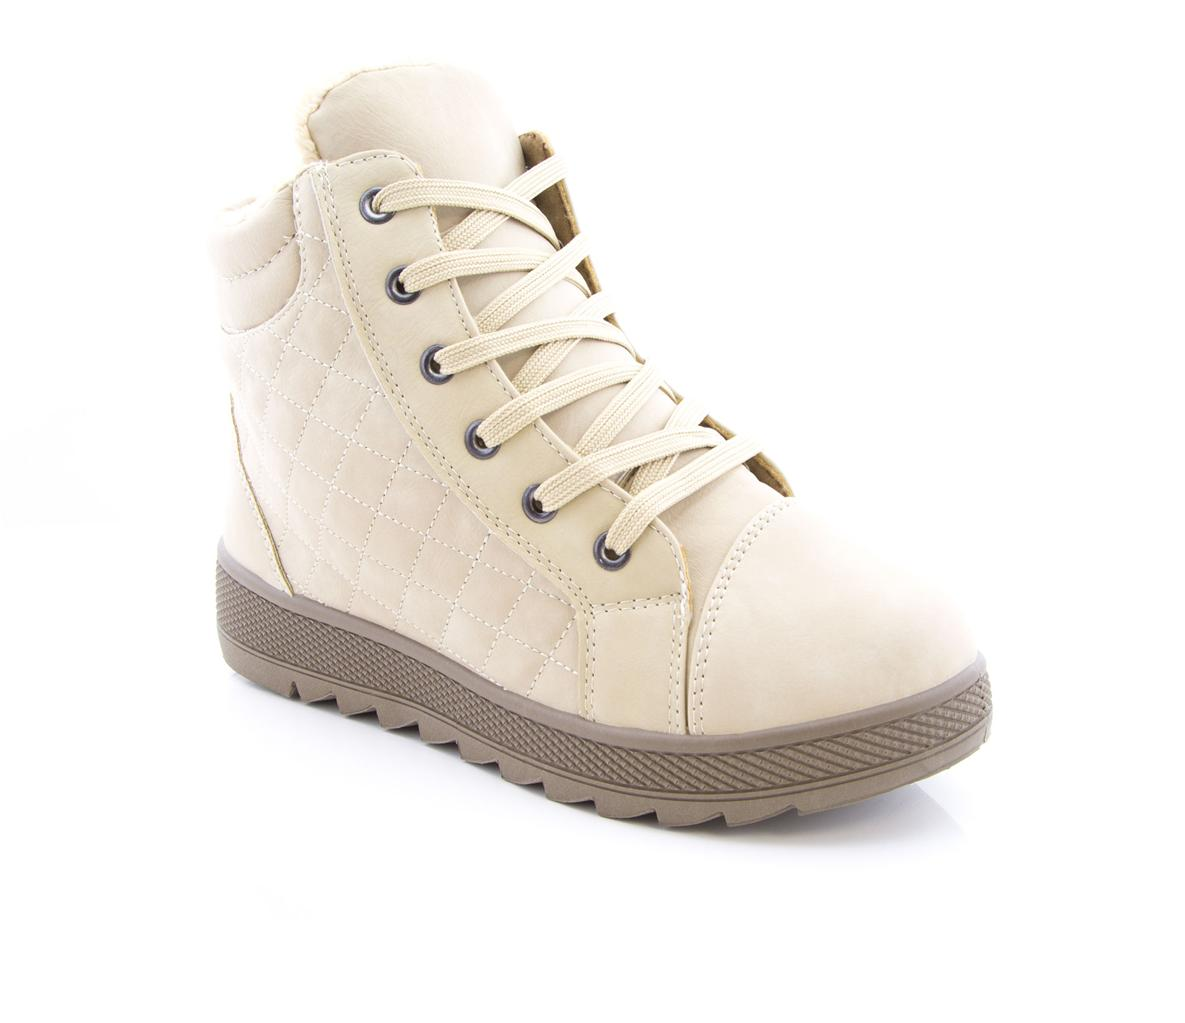 Ladies Womens Winter Full Fur Lining High Top Quilted Trainers Pumps Girls Shoes